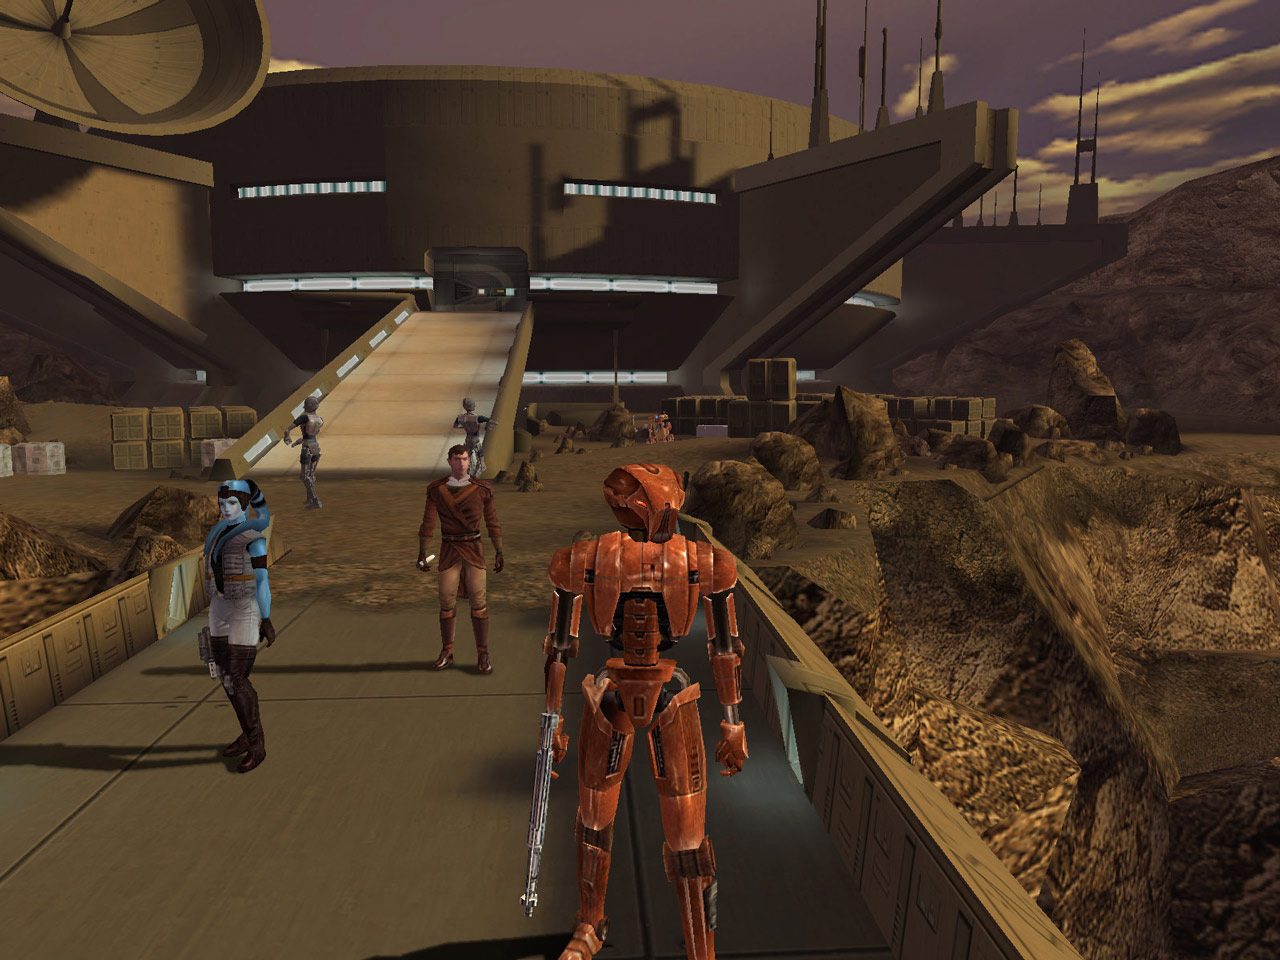 Star Wars: Knights of the Old Republic gameplay screenshot